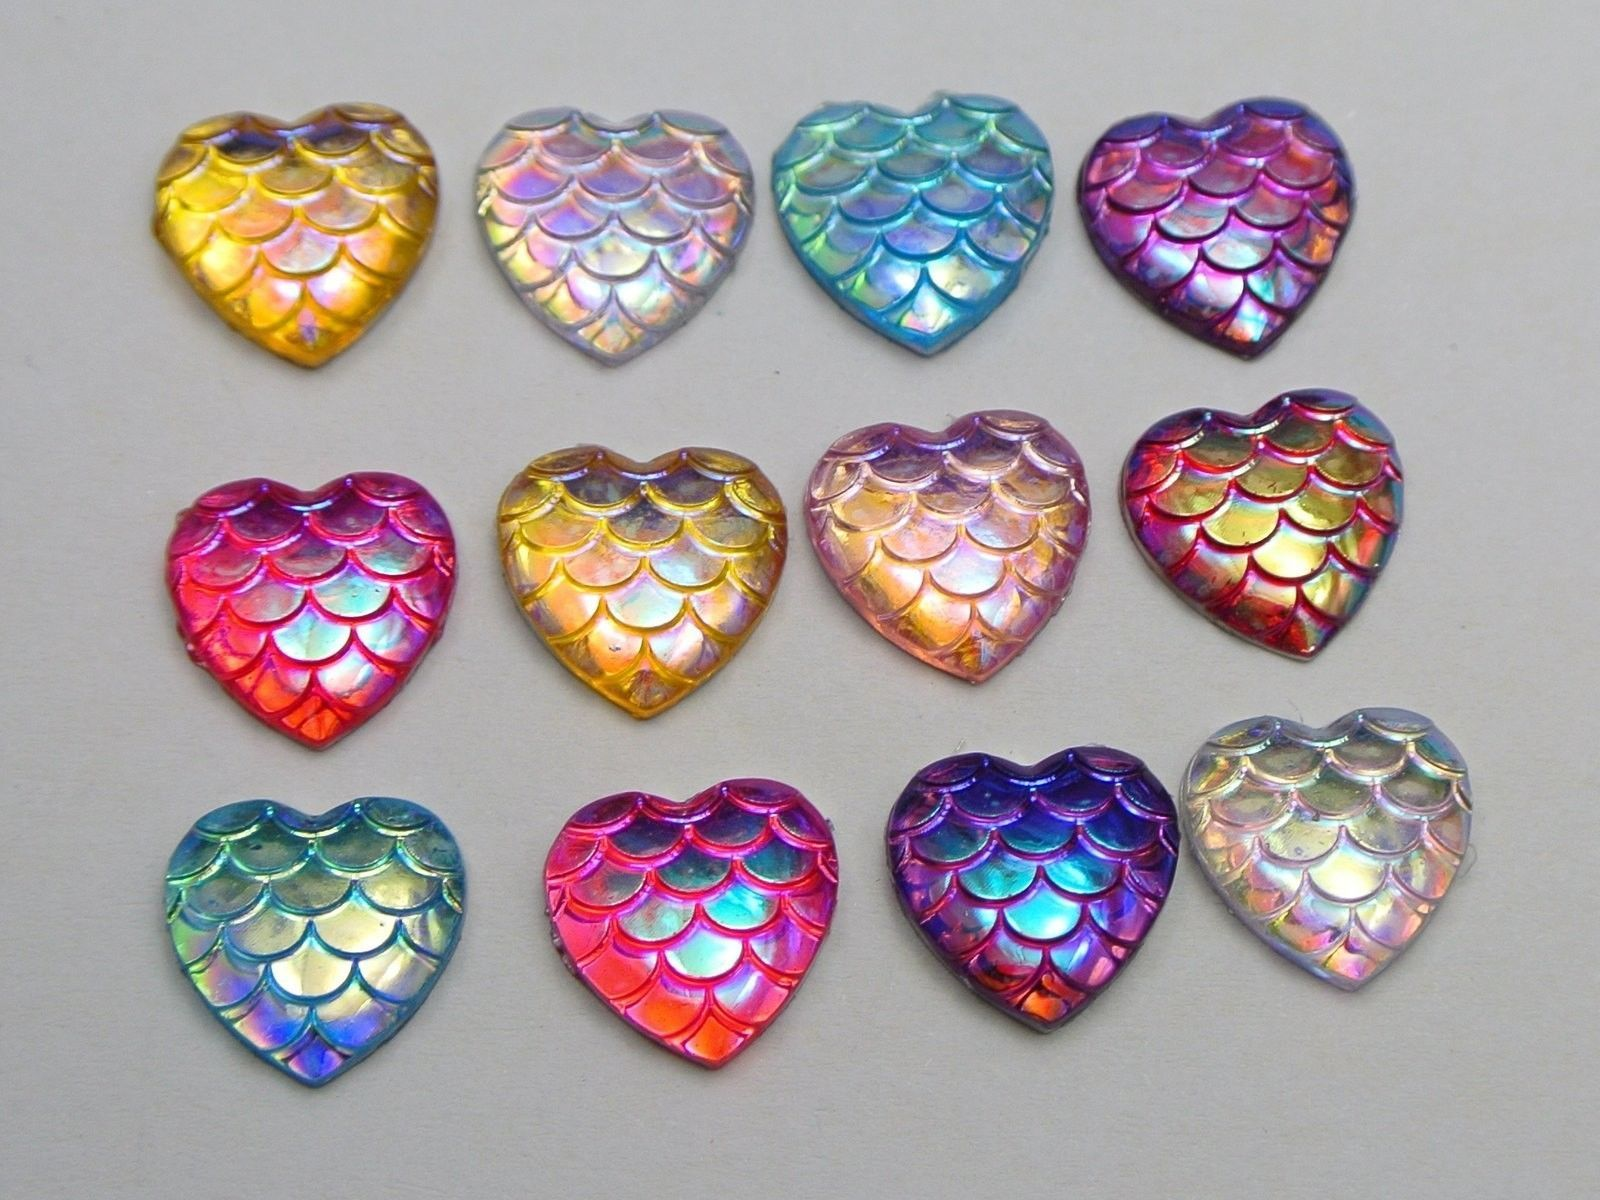 500 Mixed Colour AB Flatback Resin Fish Scale Pattern Round Cabochon 12mm